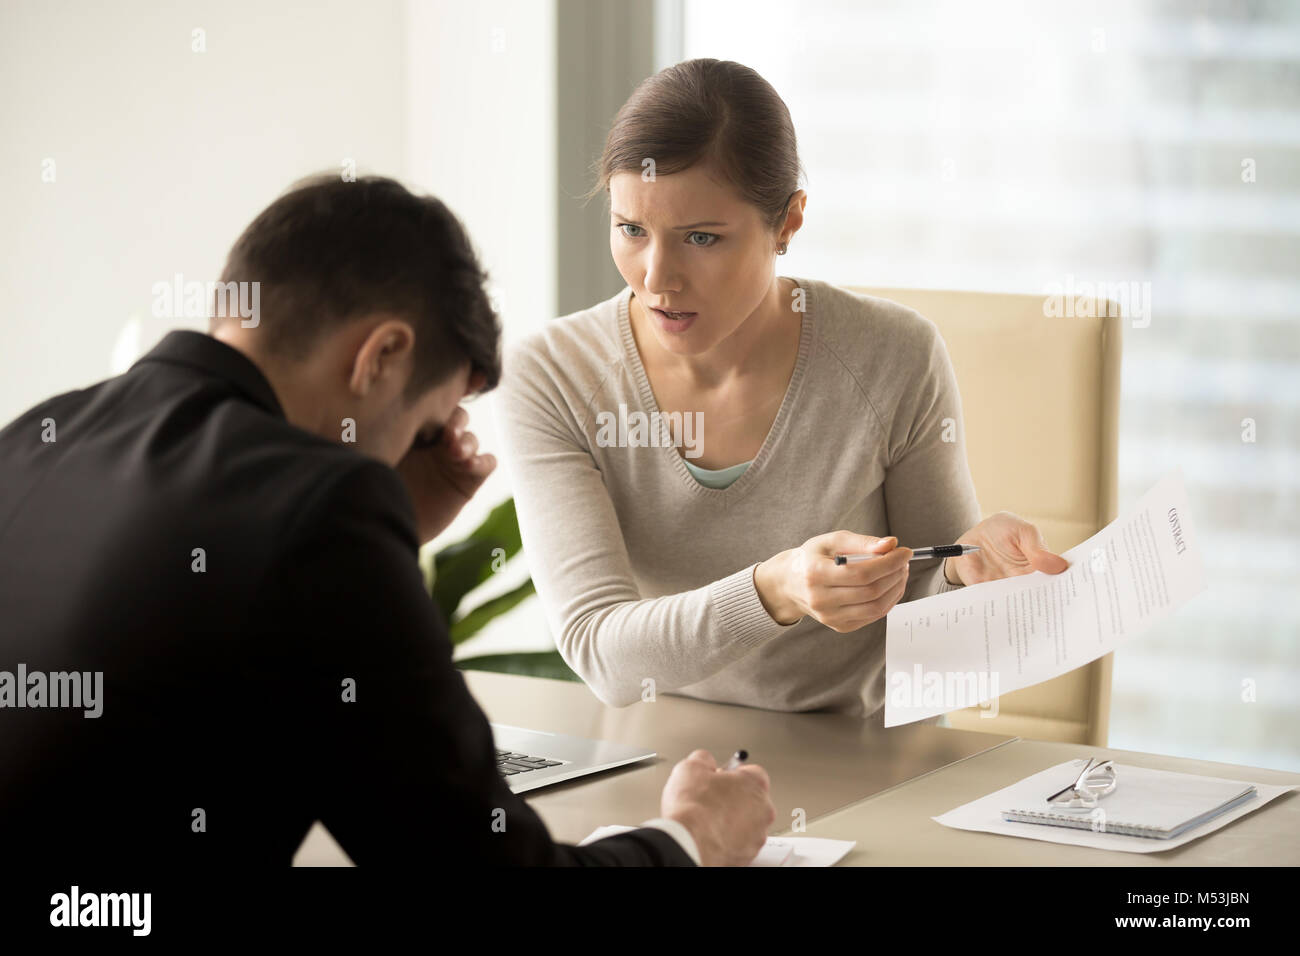 Business lady insists on changing of contact text - Stock Image